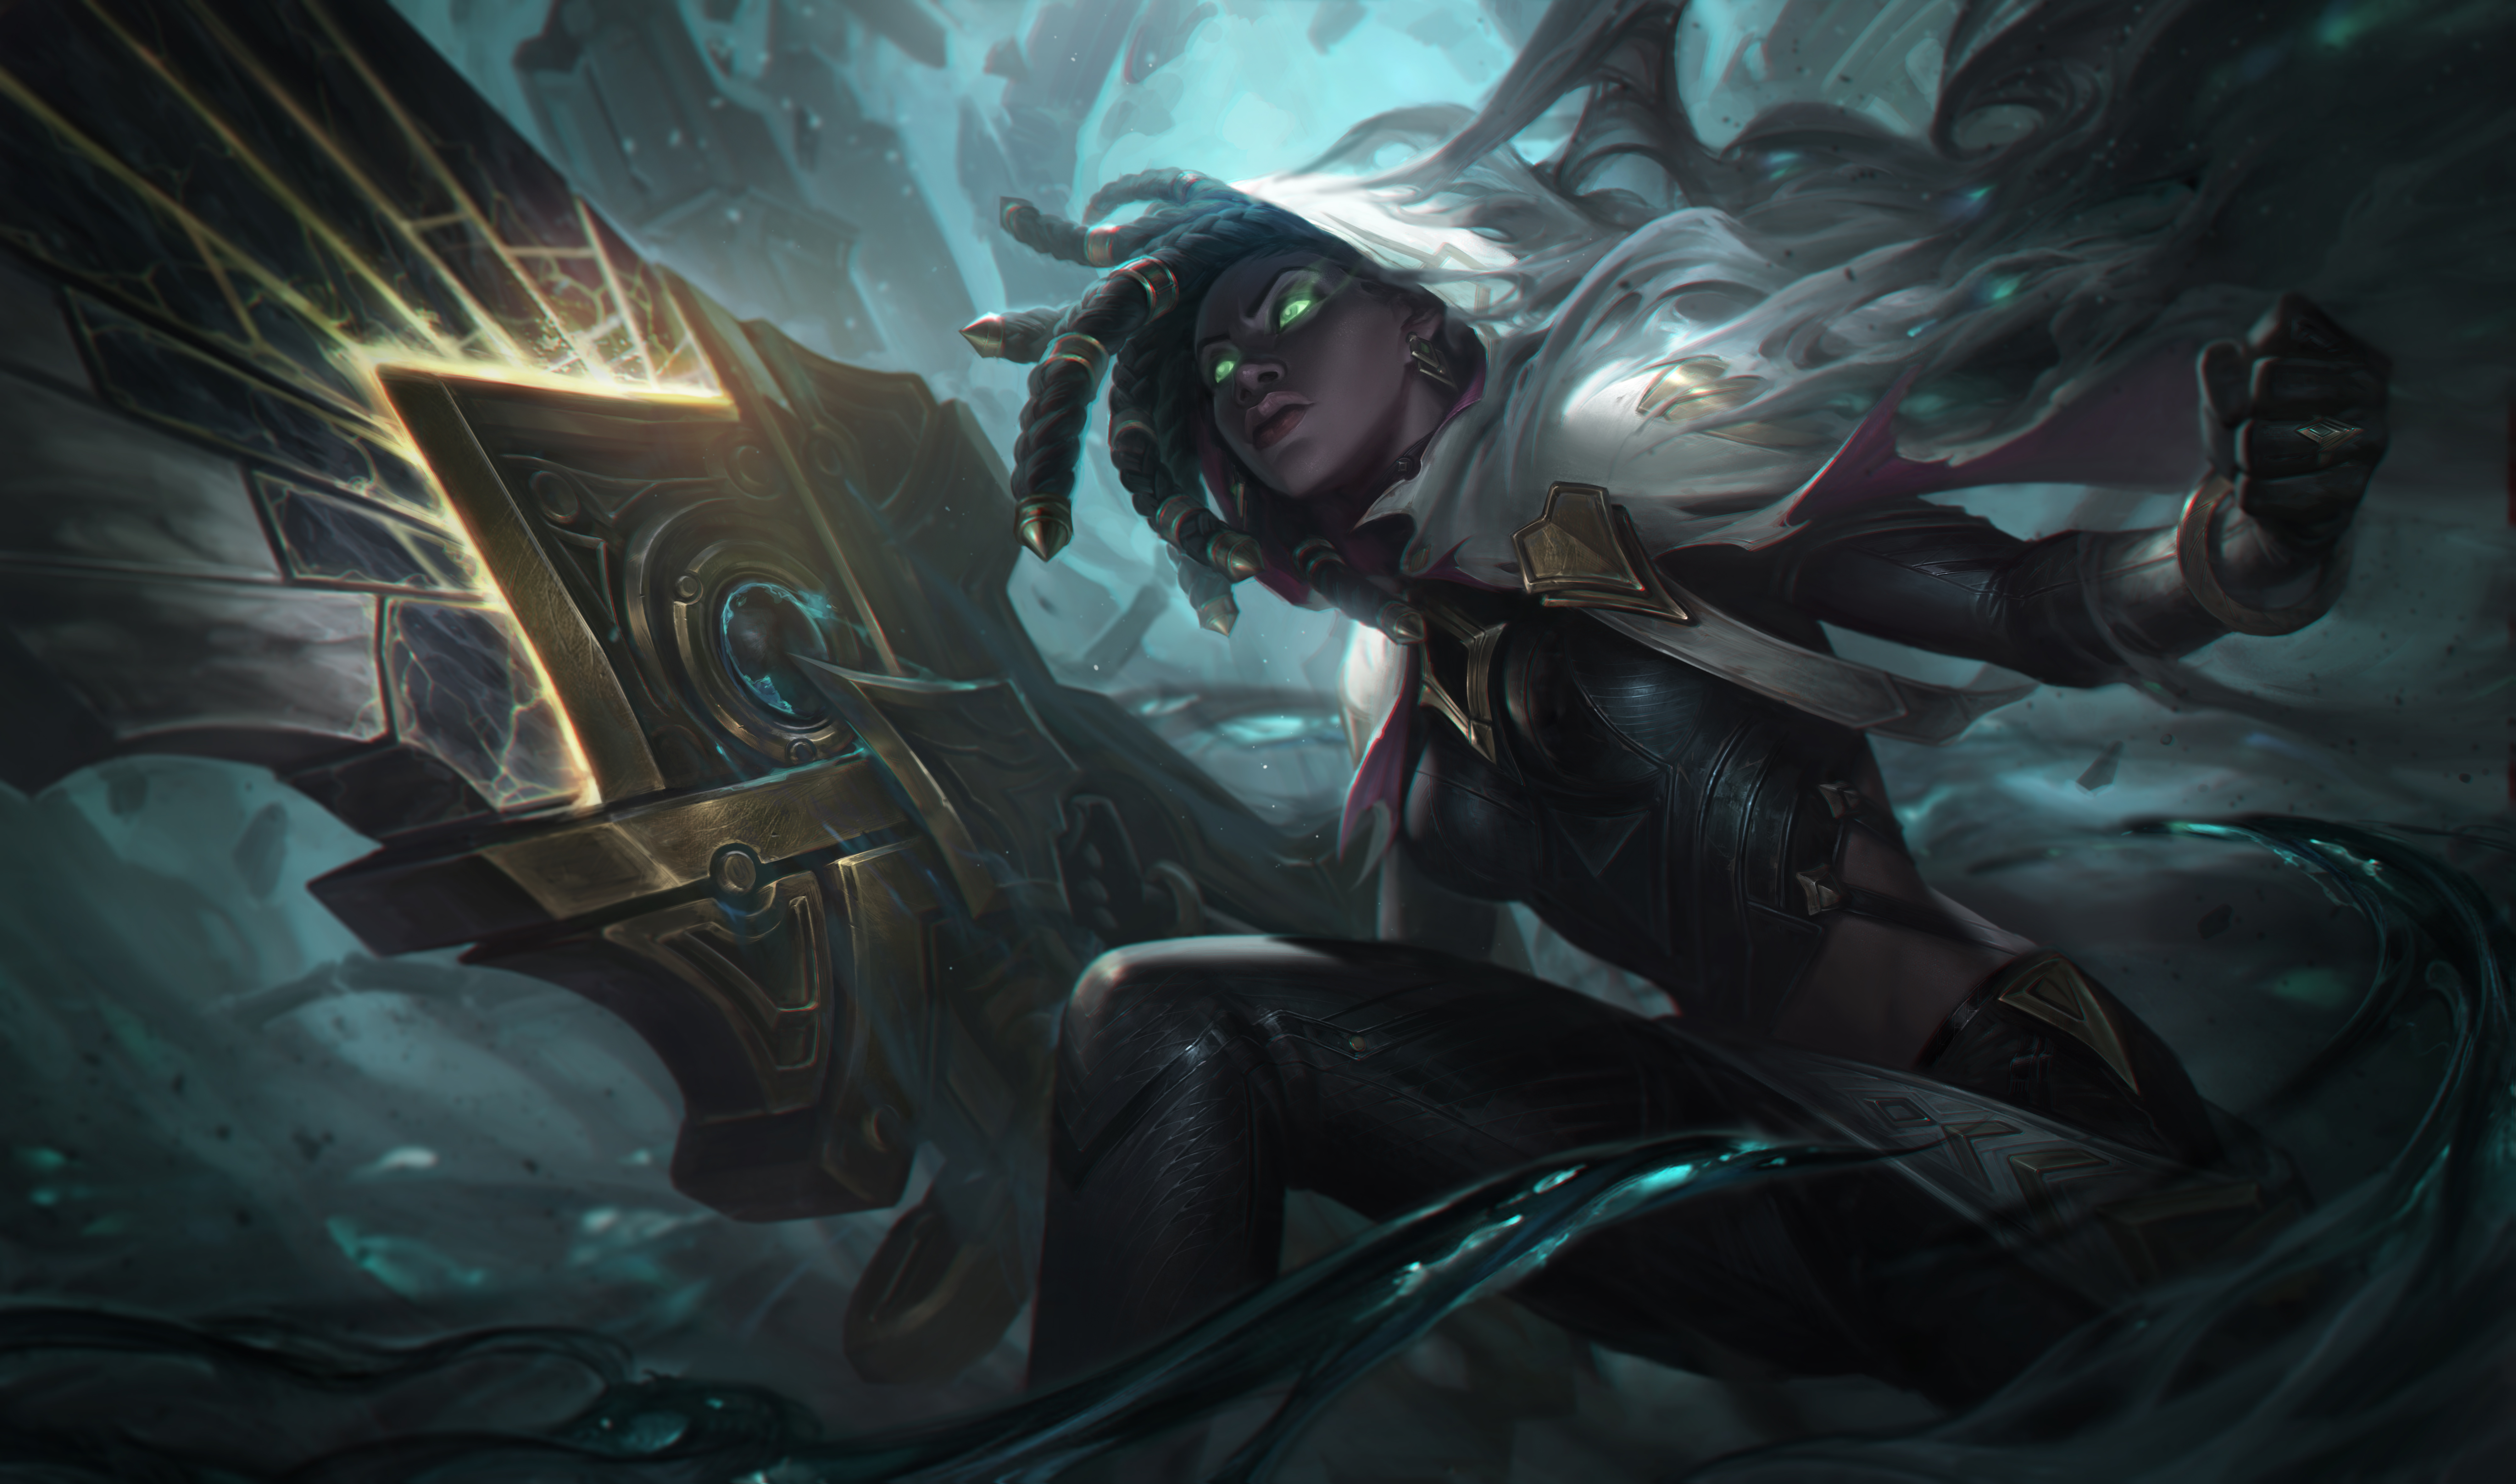 General 8000x4720 League of Legends Senna (League of Legends) Riot Games Support (League Of Legends) dreadlocks PC gaming fantasy girl video game girls